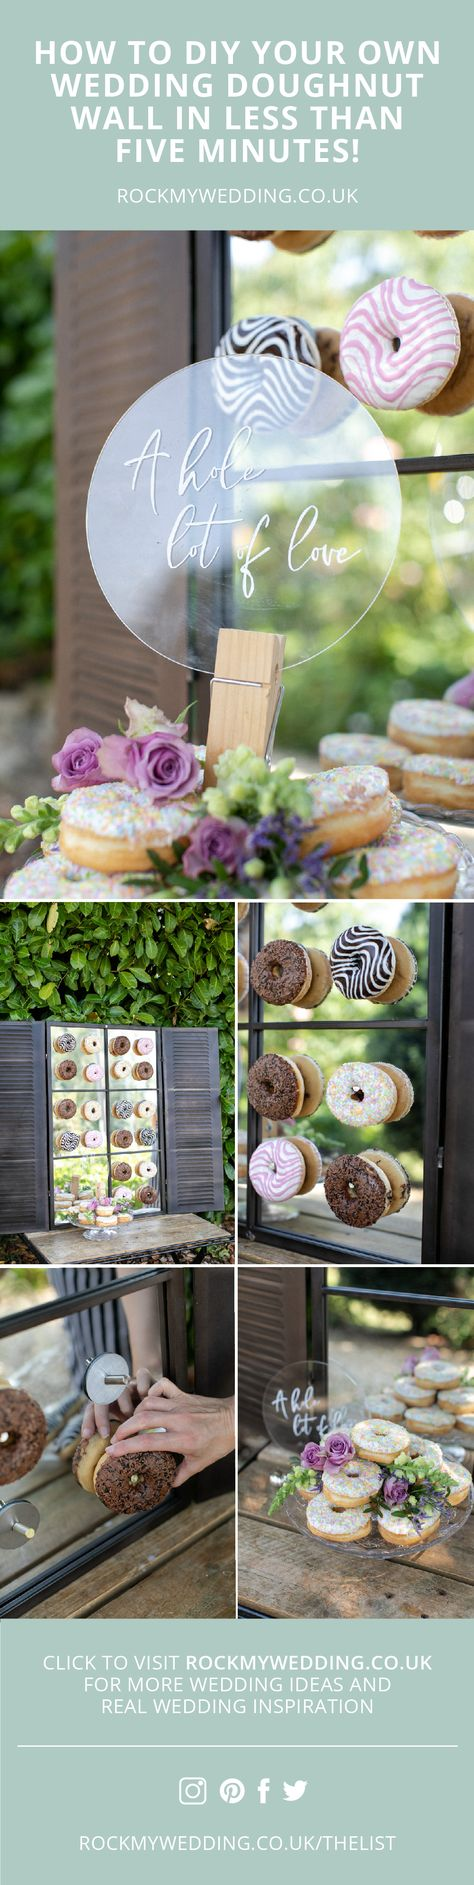 Doughnut Wall: How To DIY in Less Than 5 Minutes